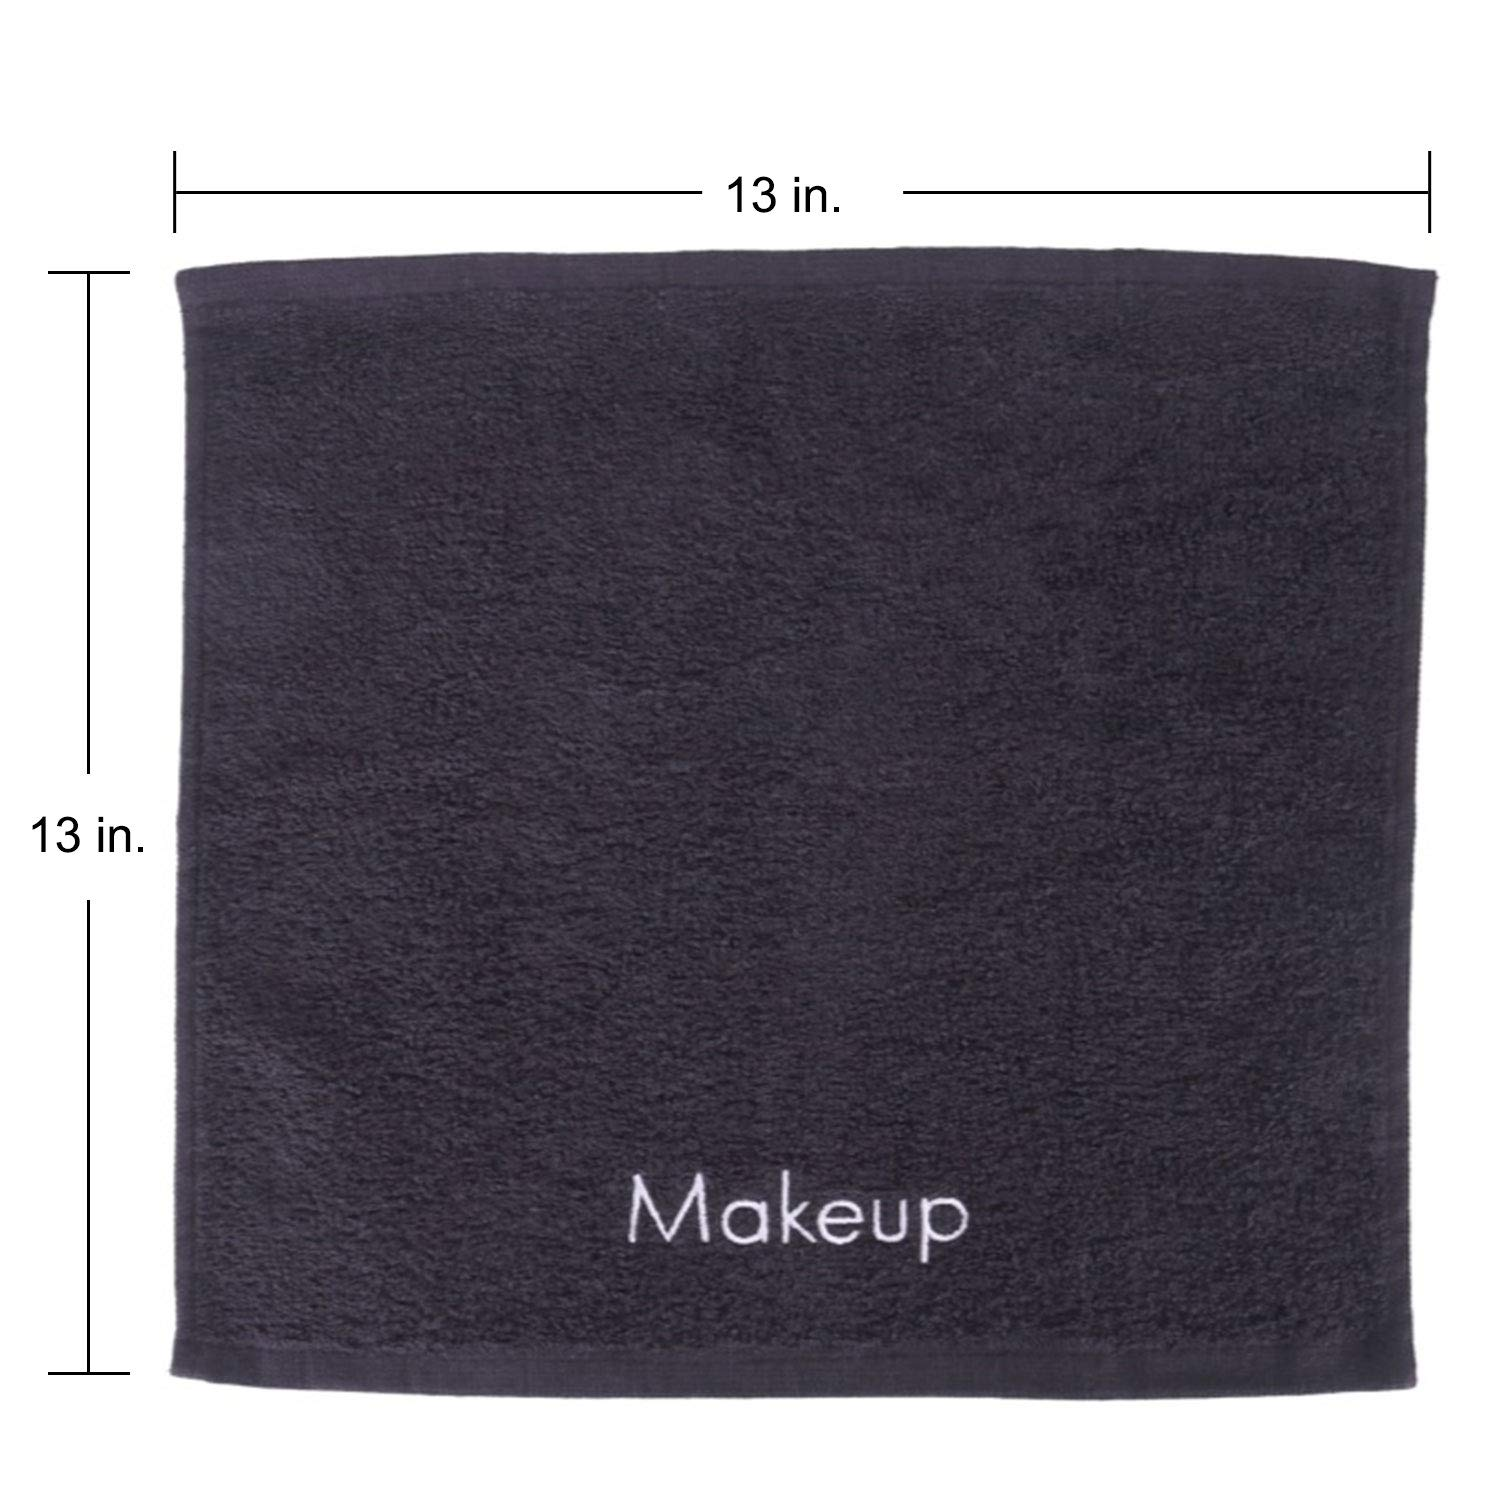 Arkwright Makeup Remover Towel, Pack of 6 Soft Cotton Towel Holiday Gift for Women (Black): Beauty